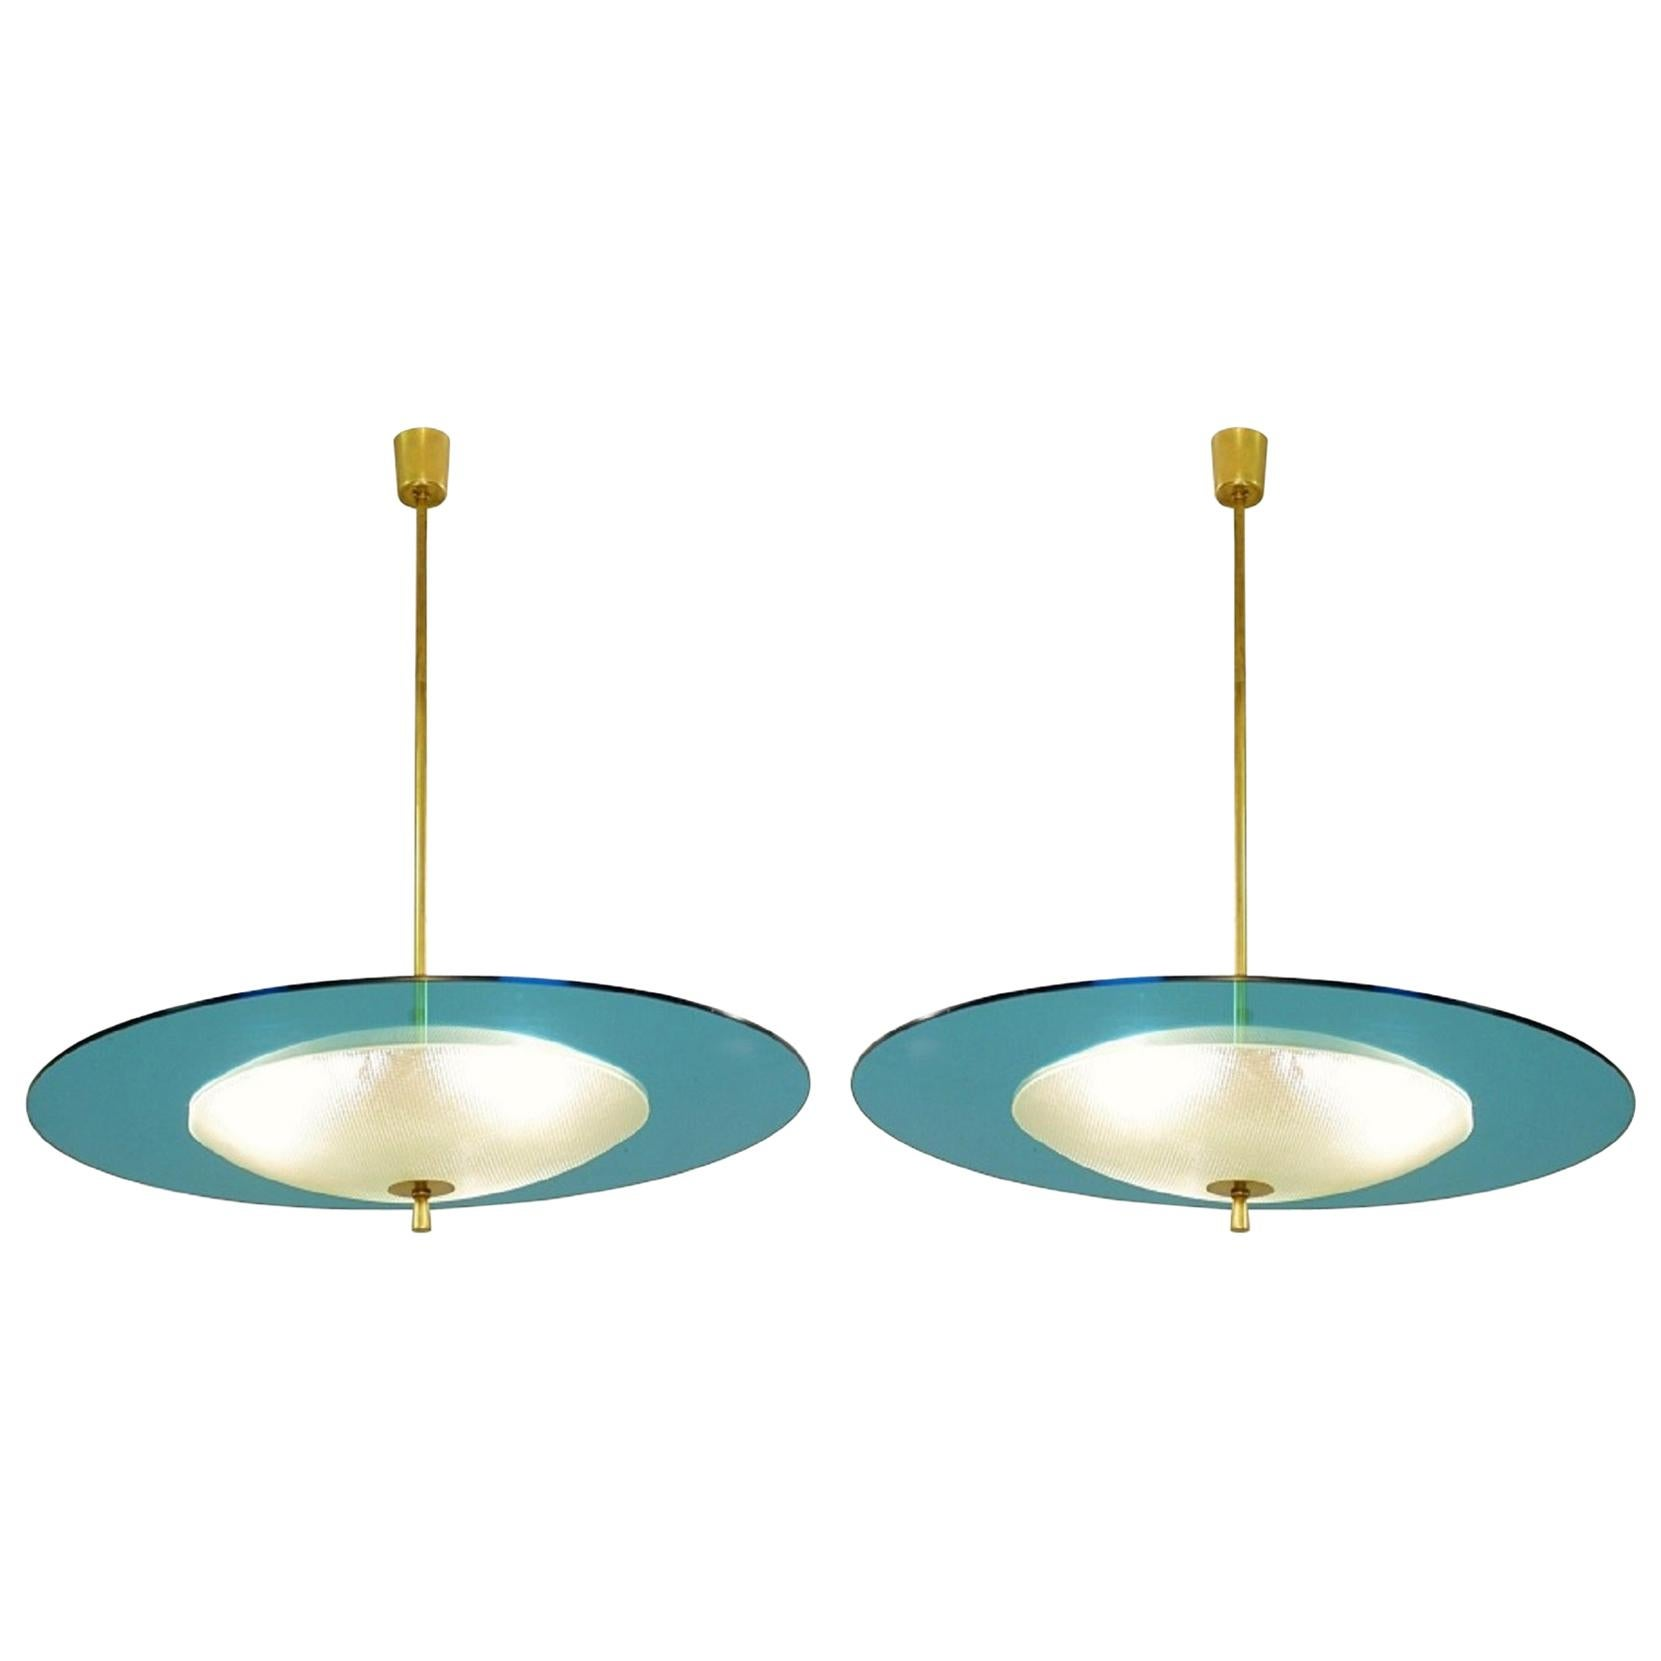 Saucer Shaped Chandelier in the Style Fontana Arte, Italy, 1960s